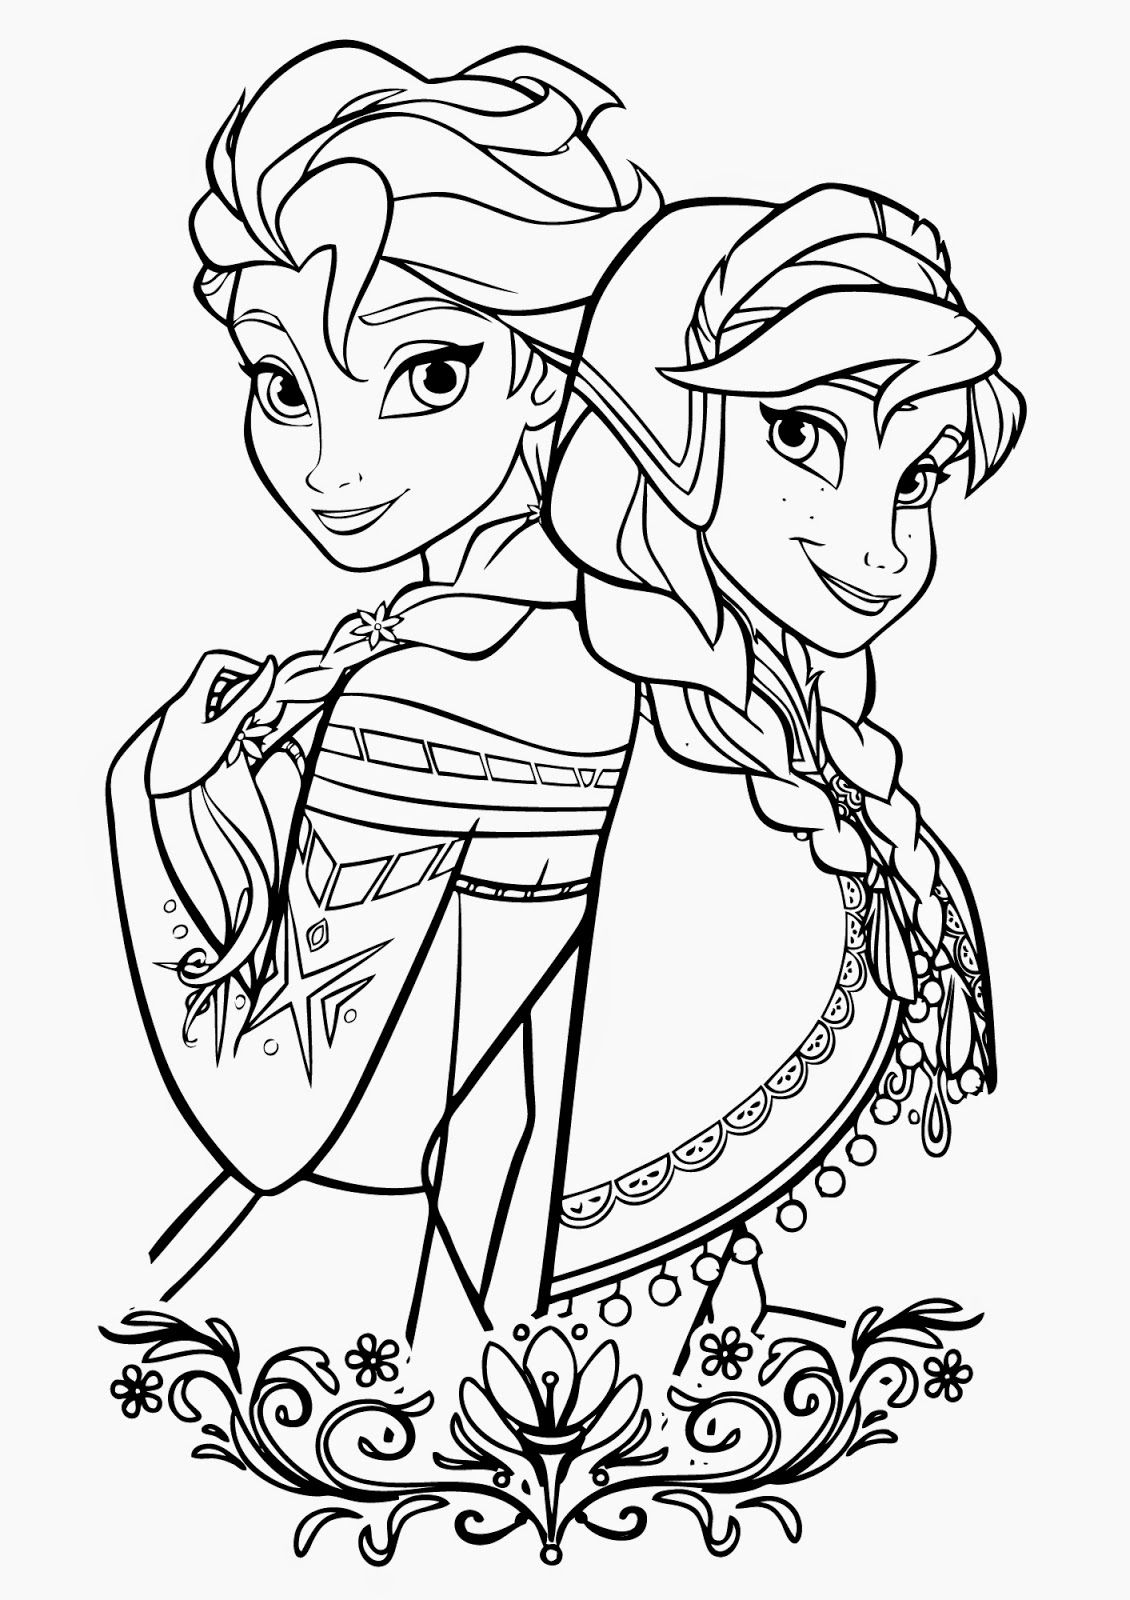 Frozen Coloring Pages 18 Camp Pinte